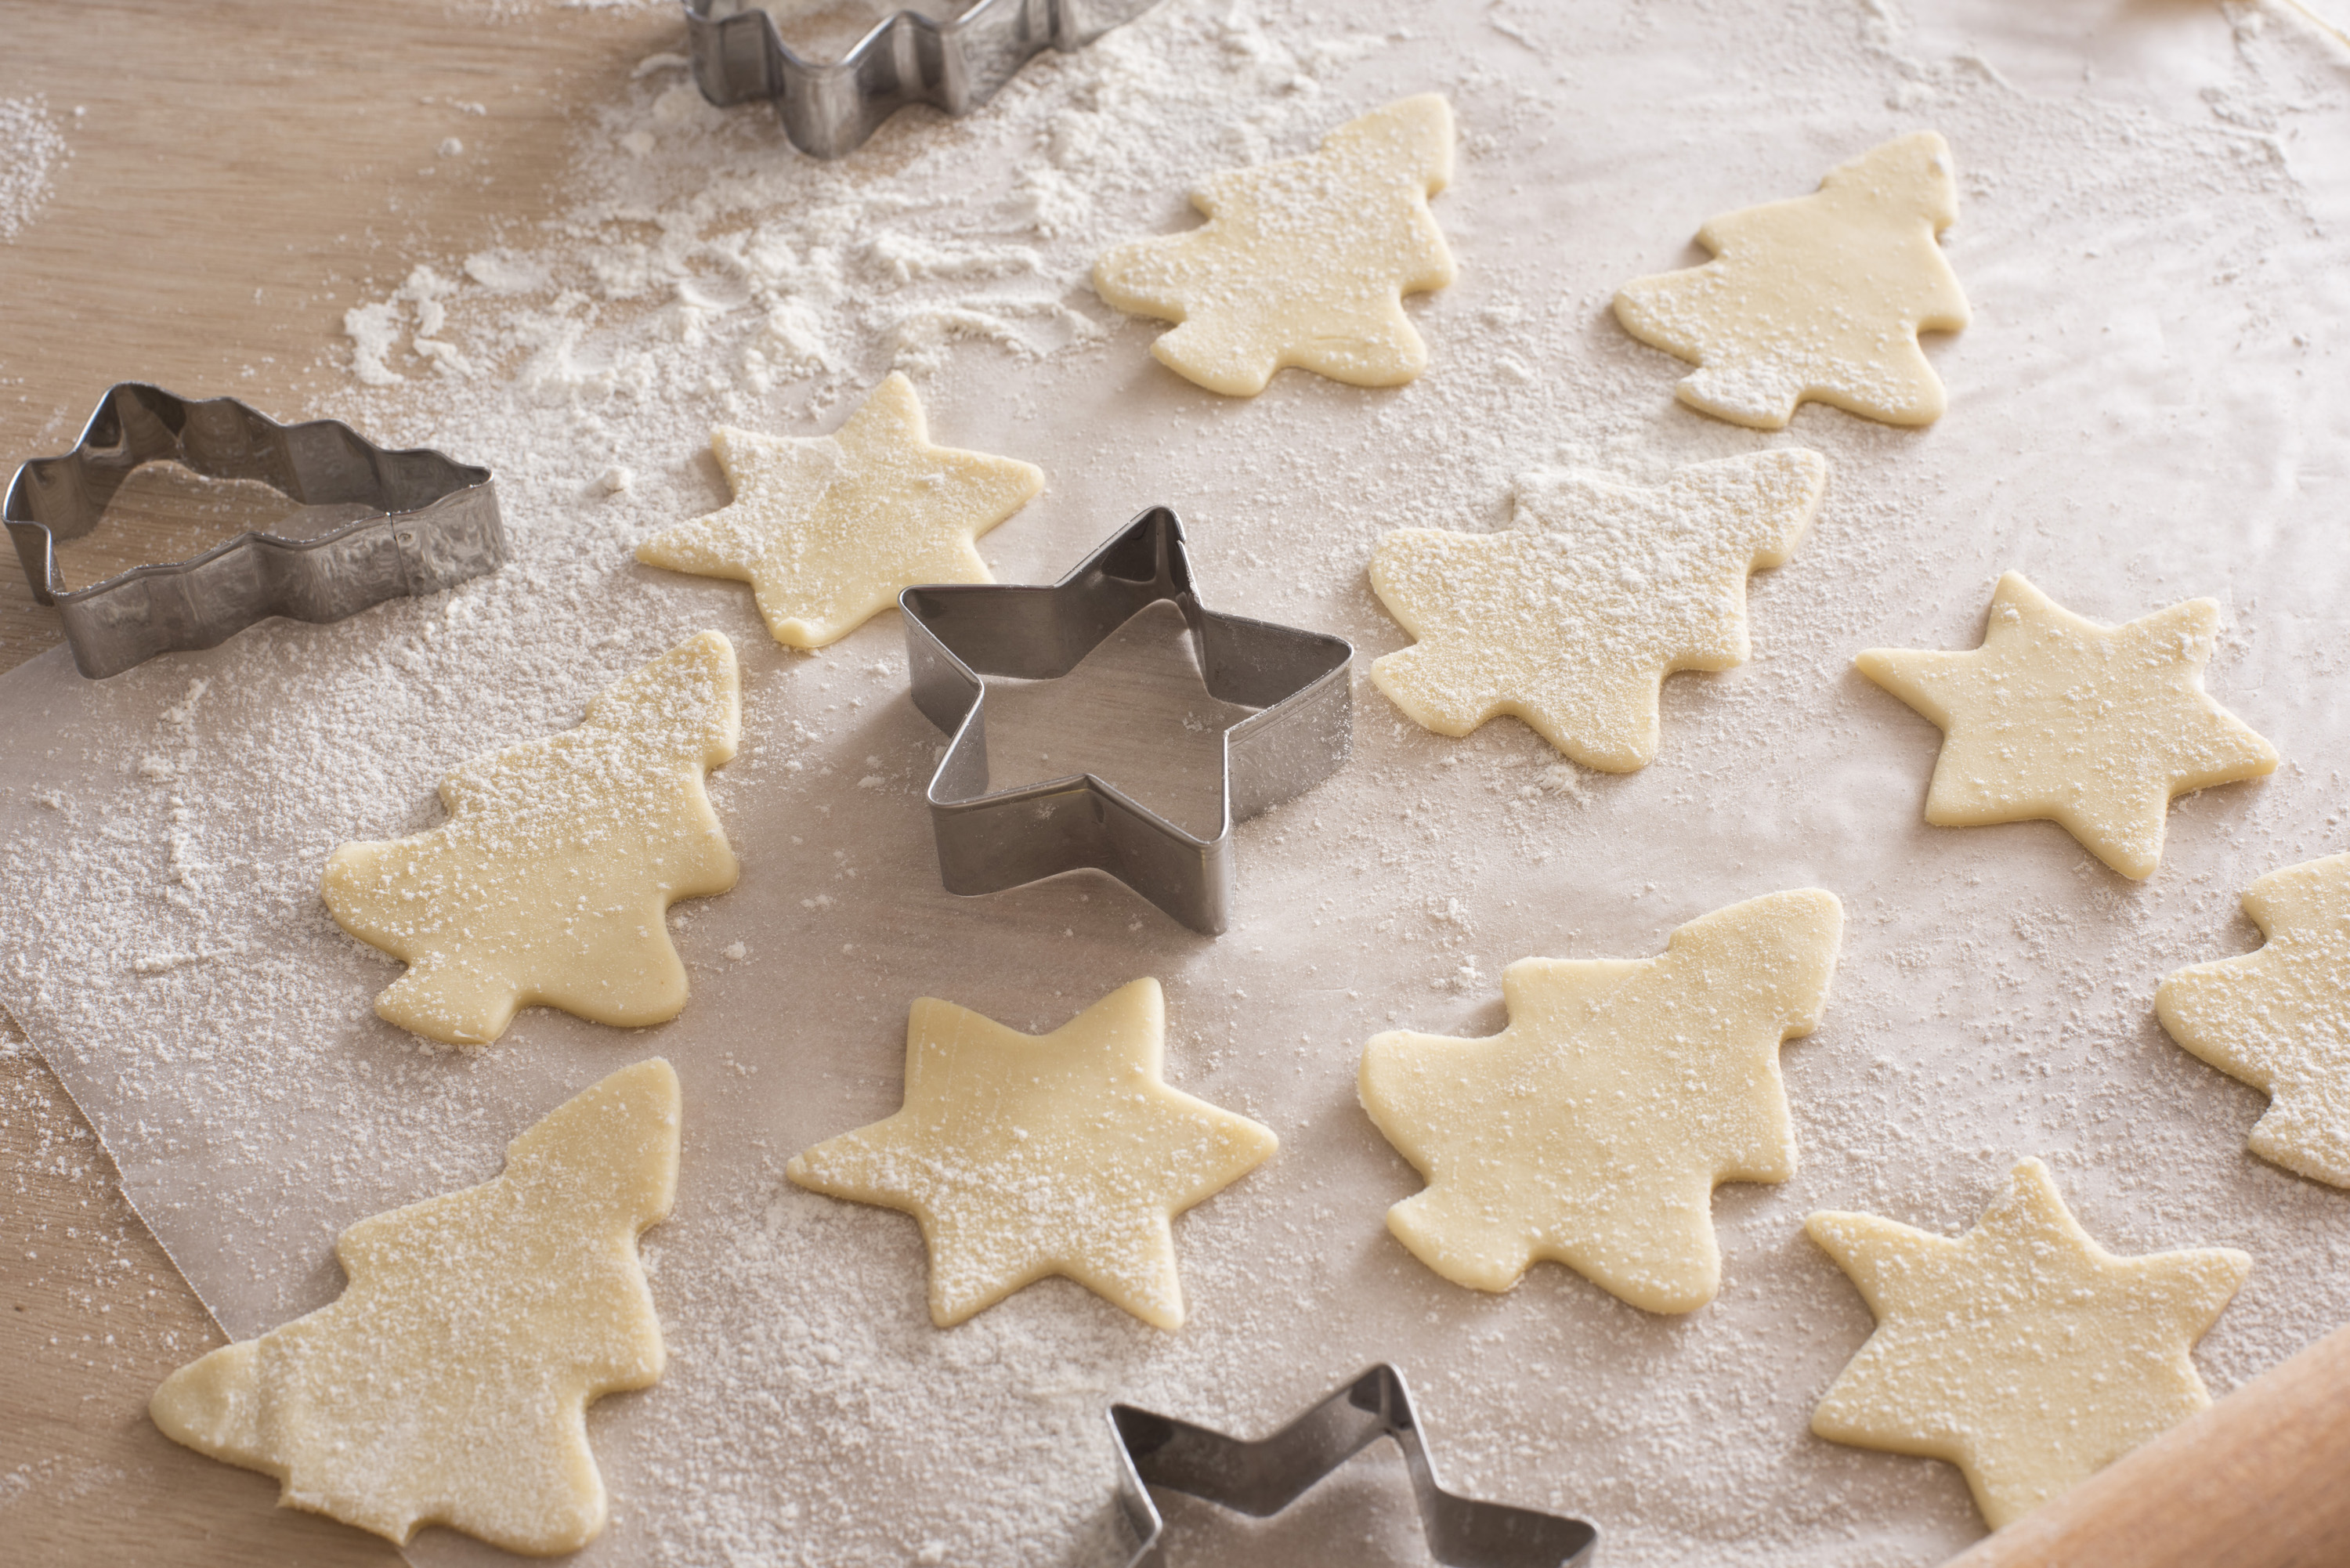 Baking festive tree and star christmas cookies with metal cookie cutters and uncooked pastry shapes on oven paper in a seasonal kitchen